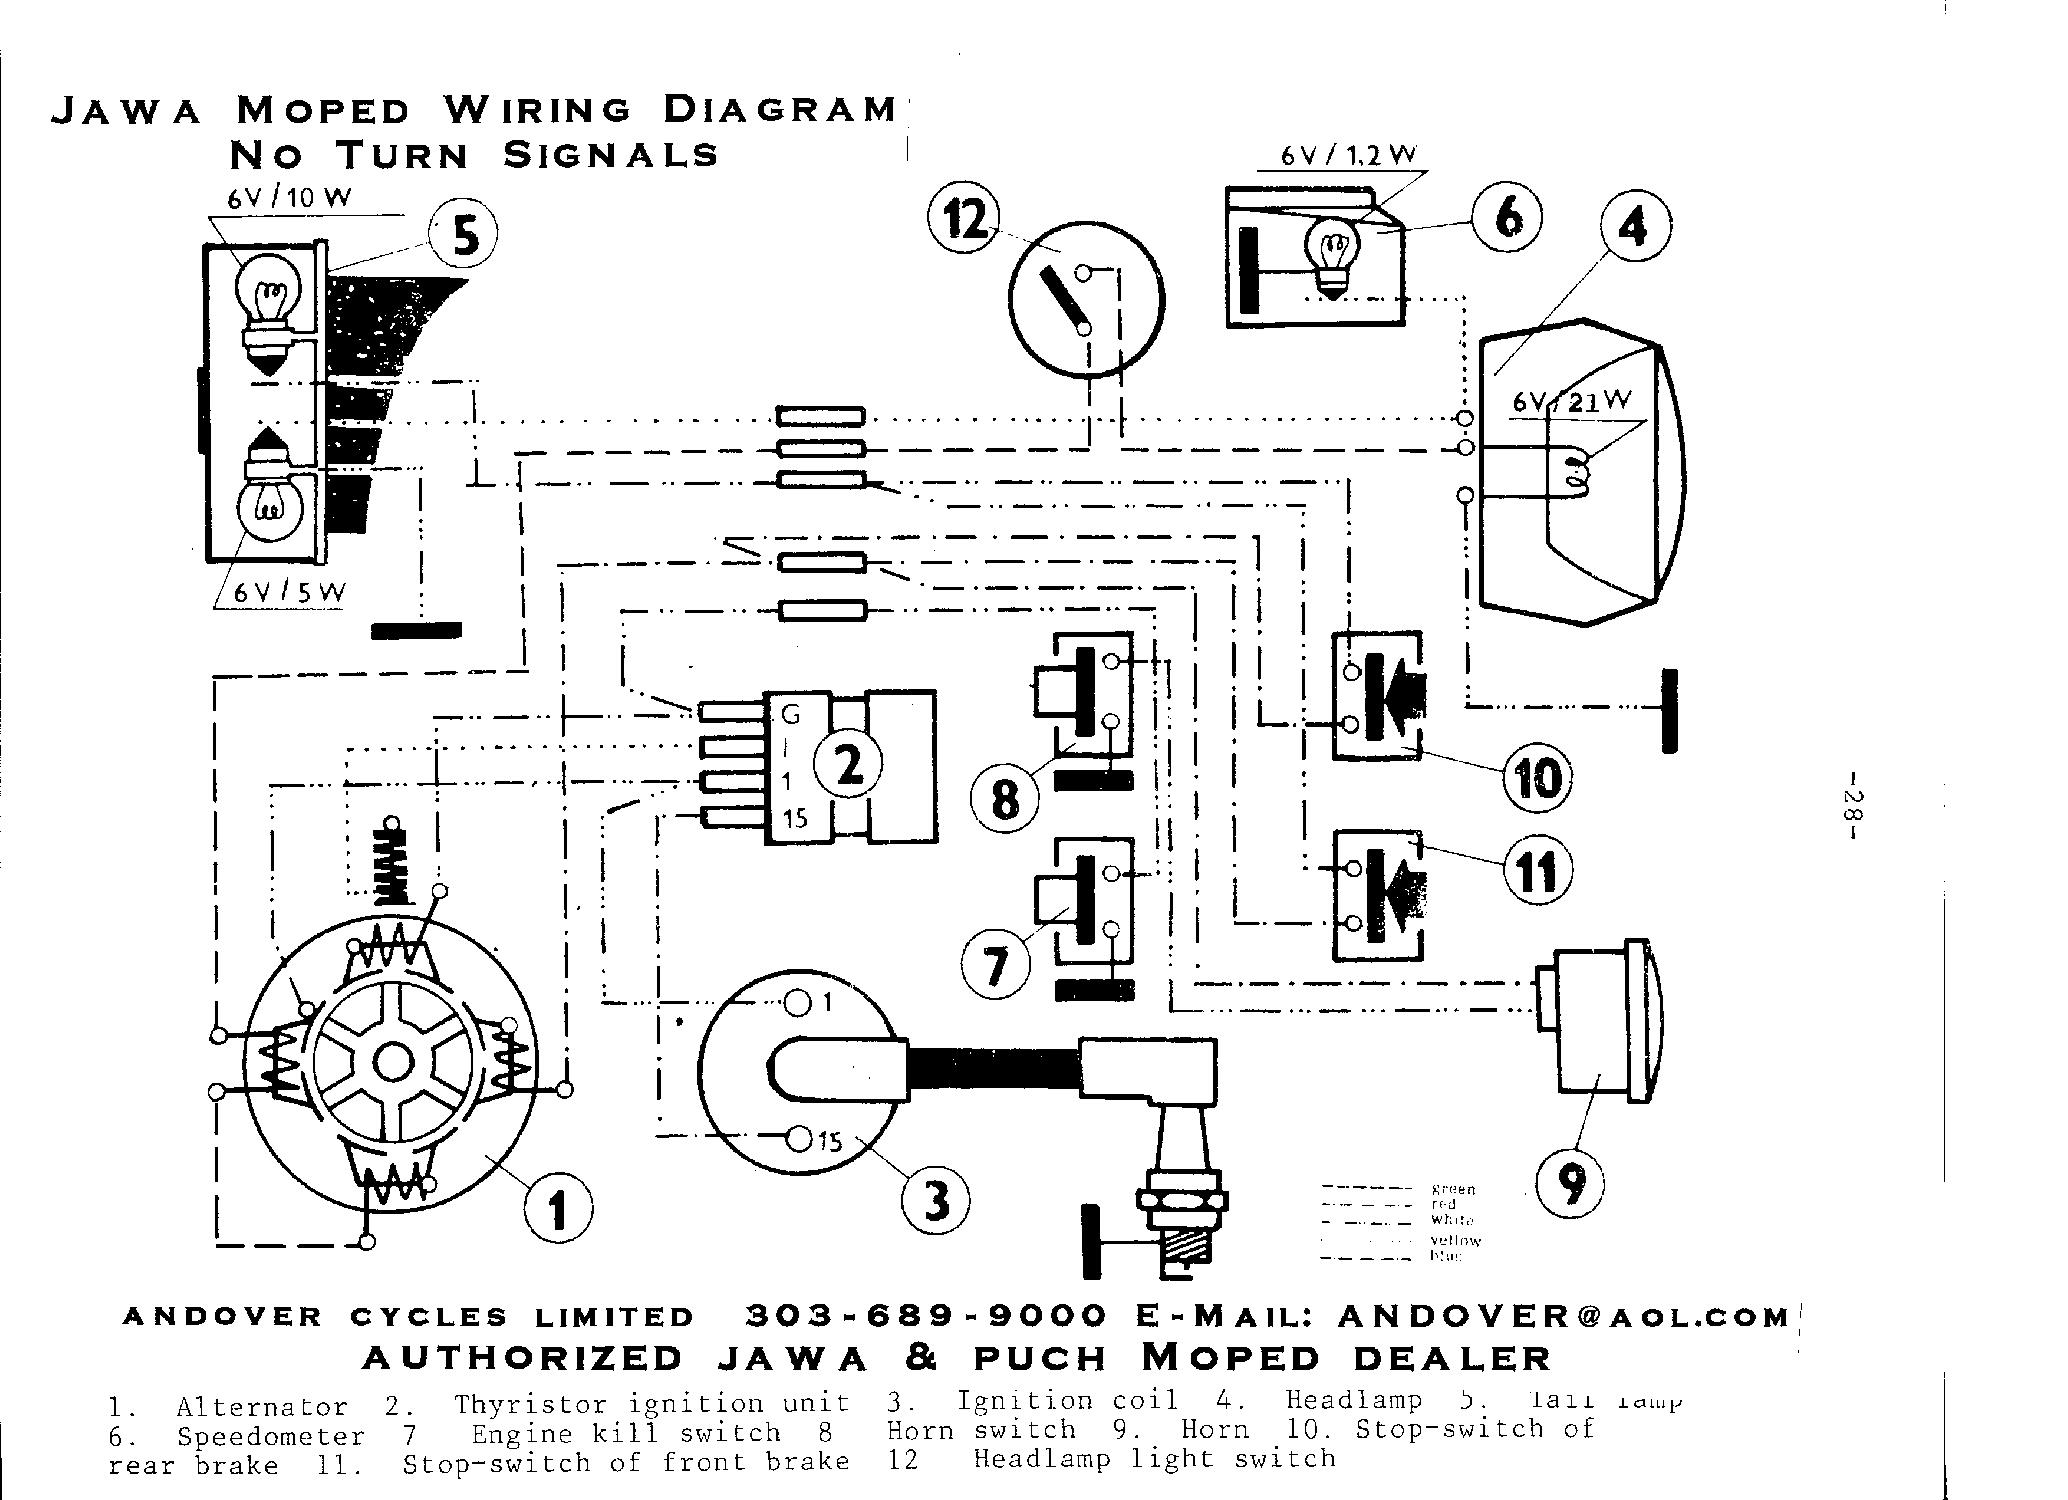 jawanotu Jawa Moped Wiring Diagram on puch moped wiring diagram, tomos moped wiring diagram, kinetic moped wiring diagram, sachs moped wiring diagram,